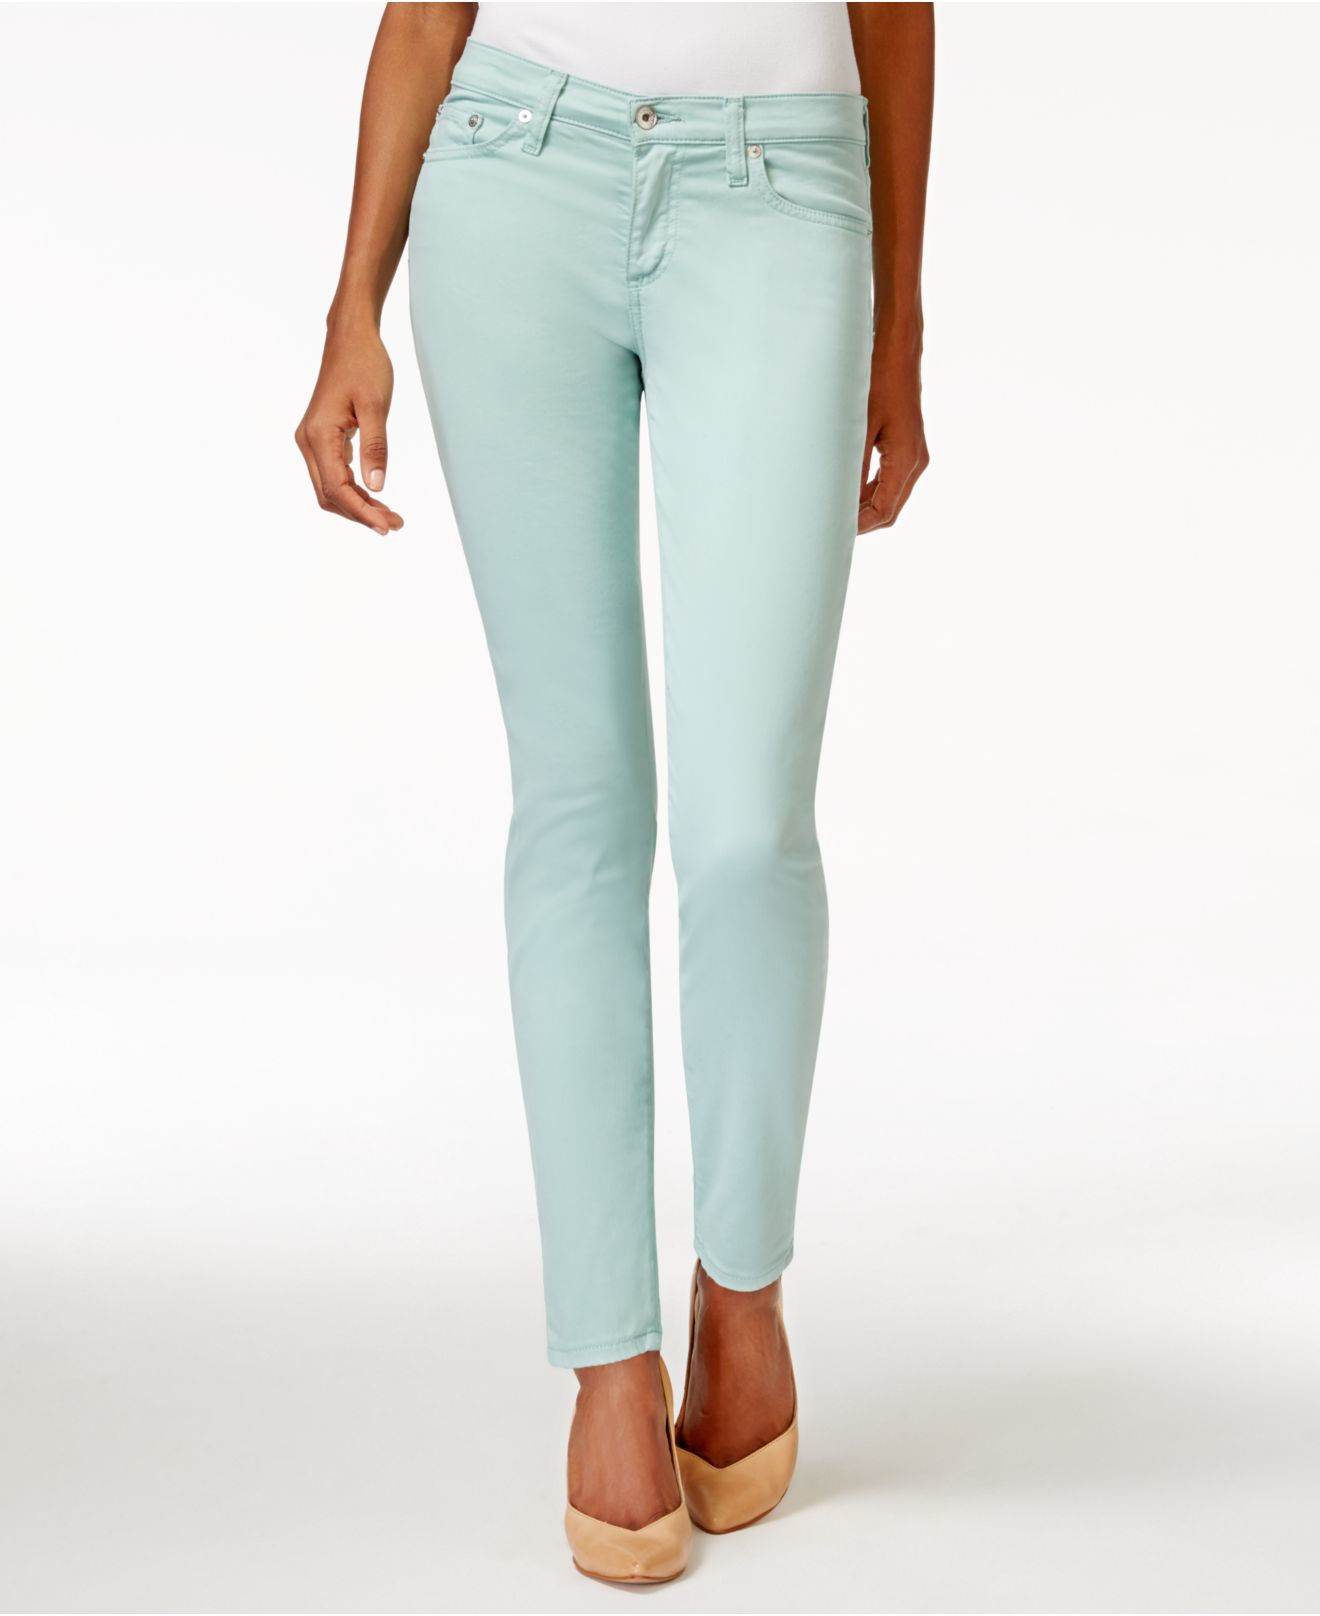 Cool 23 Wonderful Mint Green Pants Womens U2013 Playzoa.com